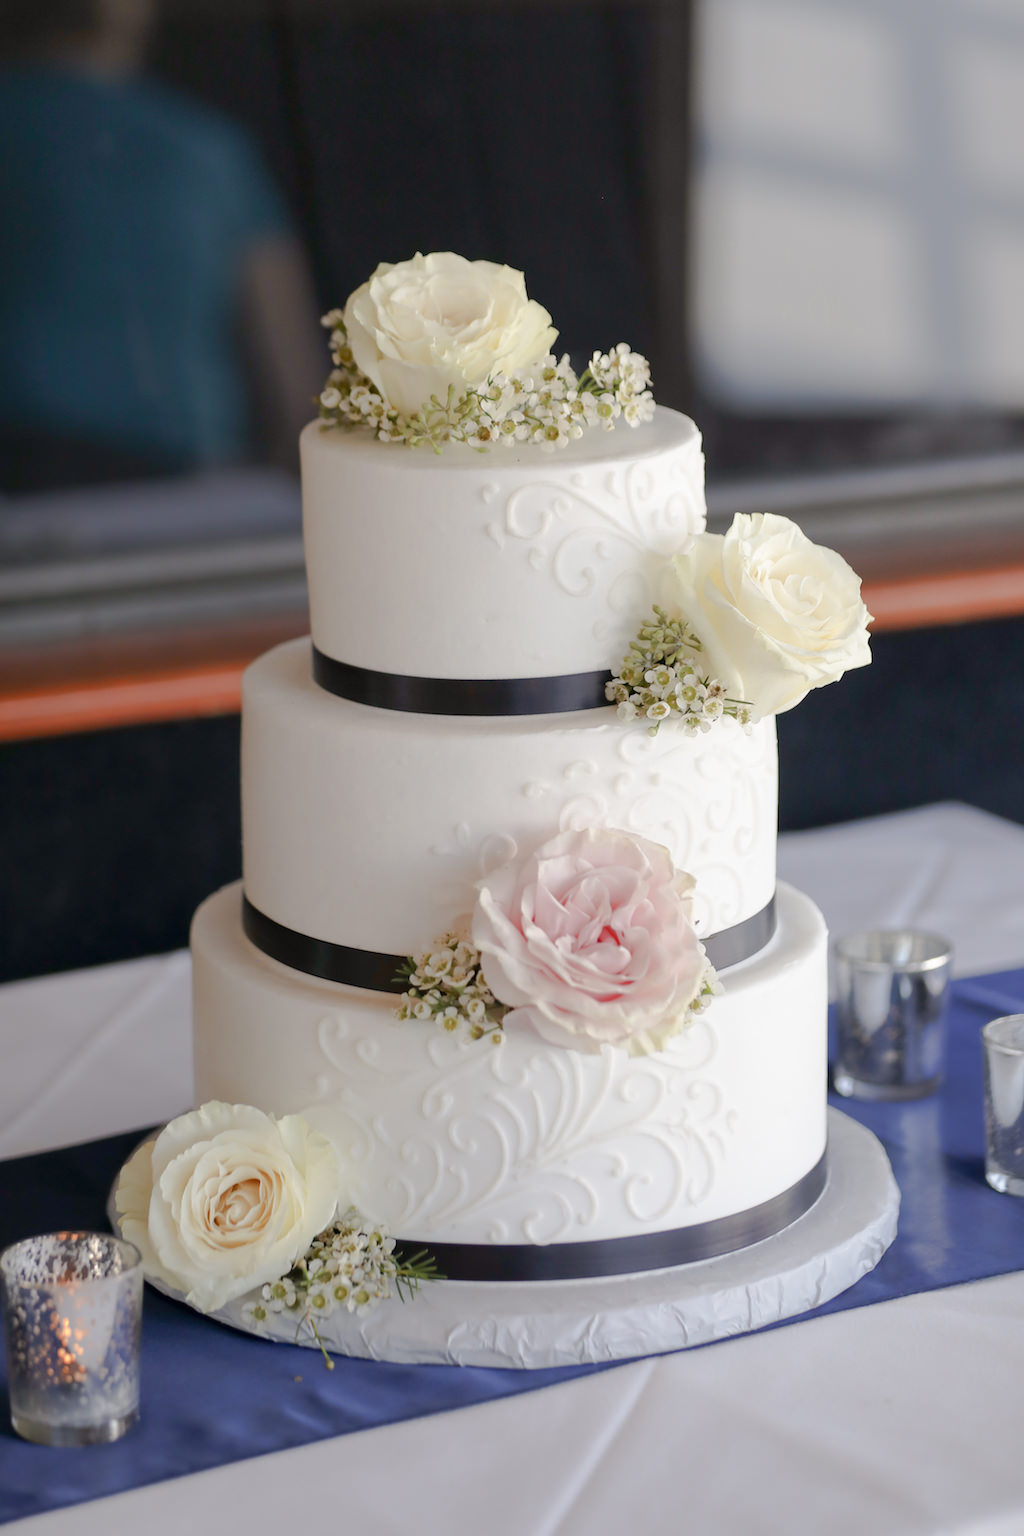 Three Tiered Round White Wedding Cake With Blush Pink And White